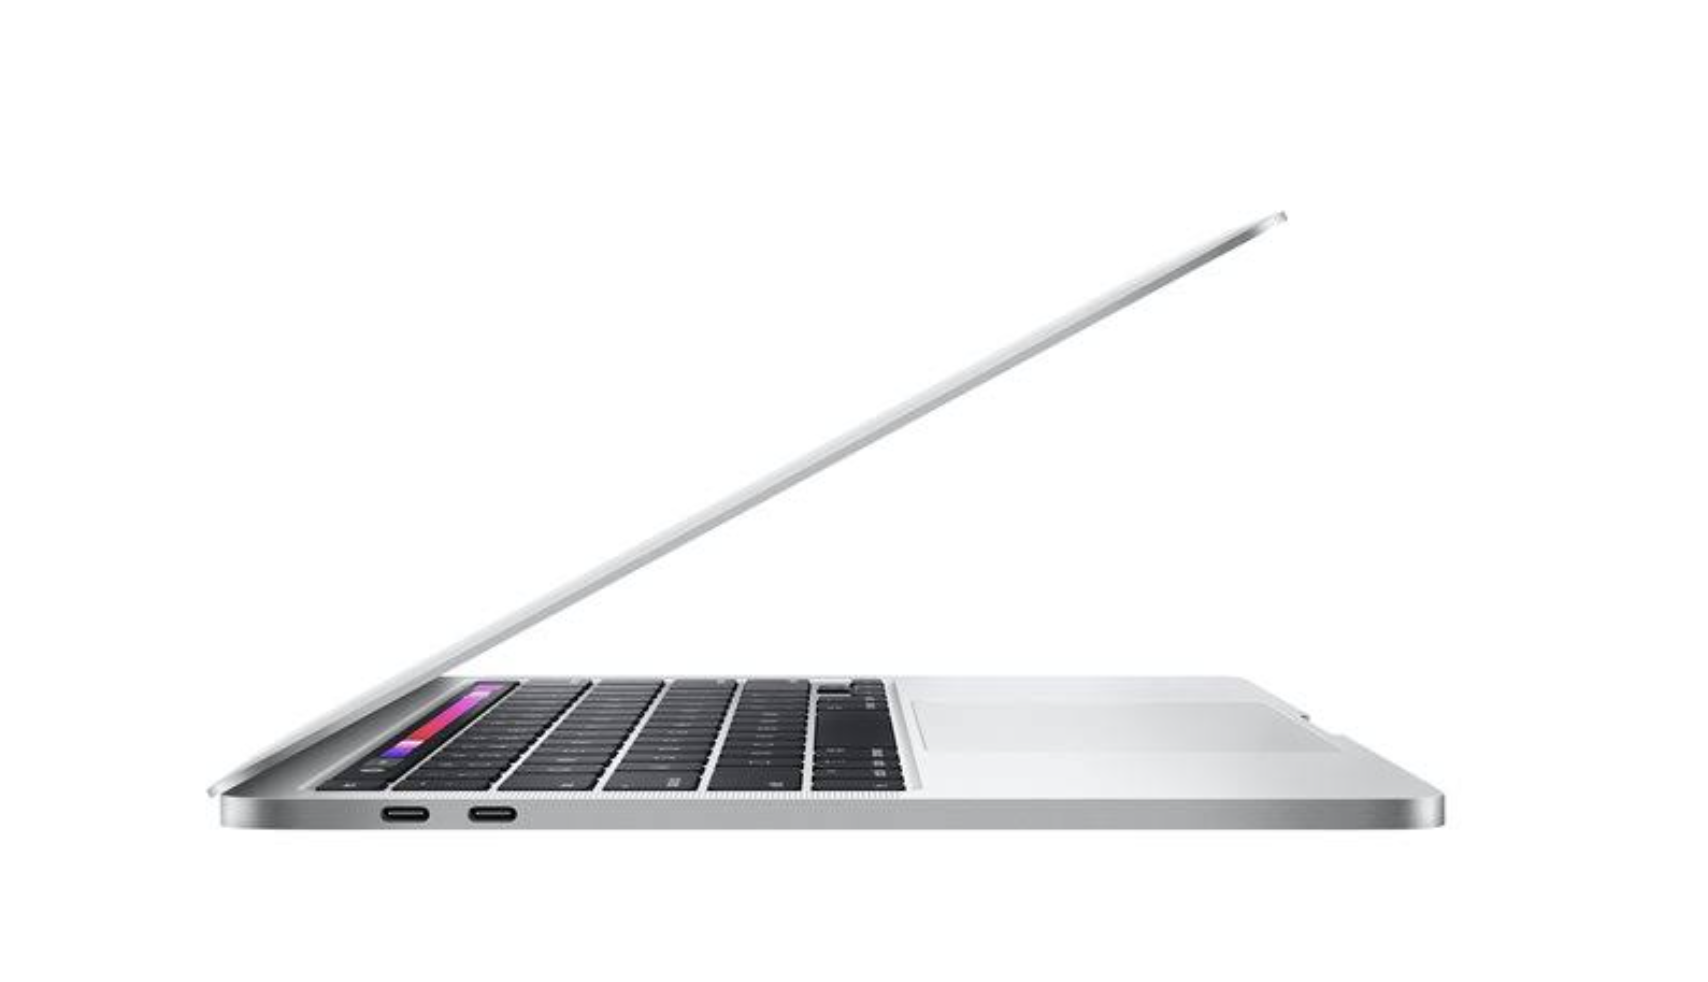 Graduation Bundle MacBook Pro M1 (Silver) 512GB with AppleCare+ and FREE HD at Small Dog Electronics